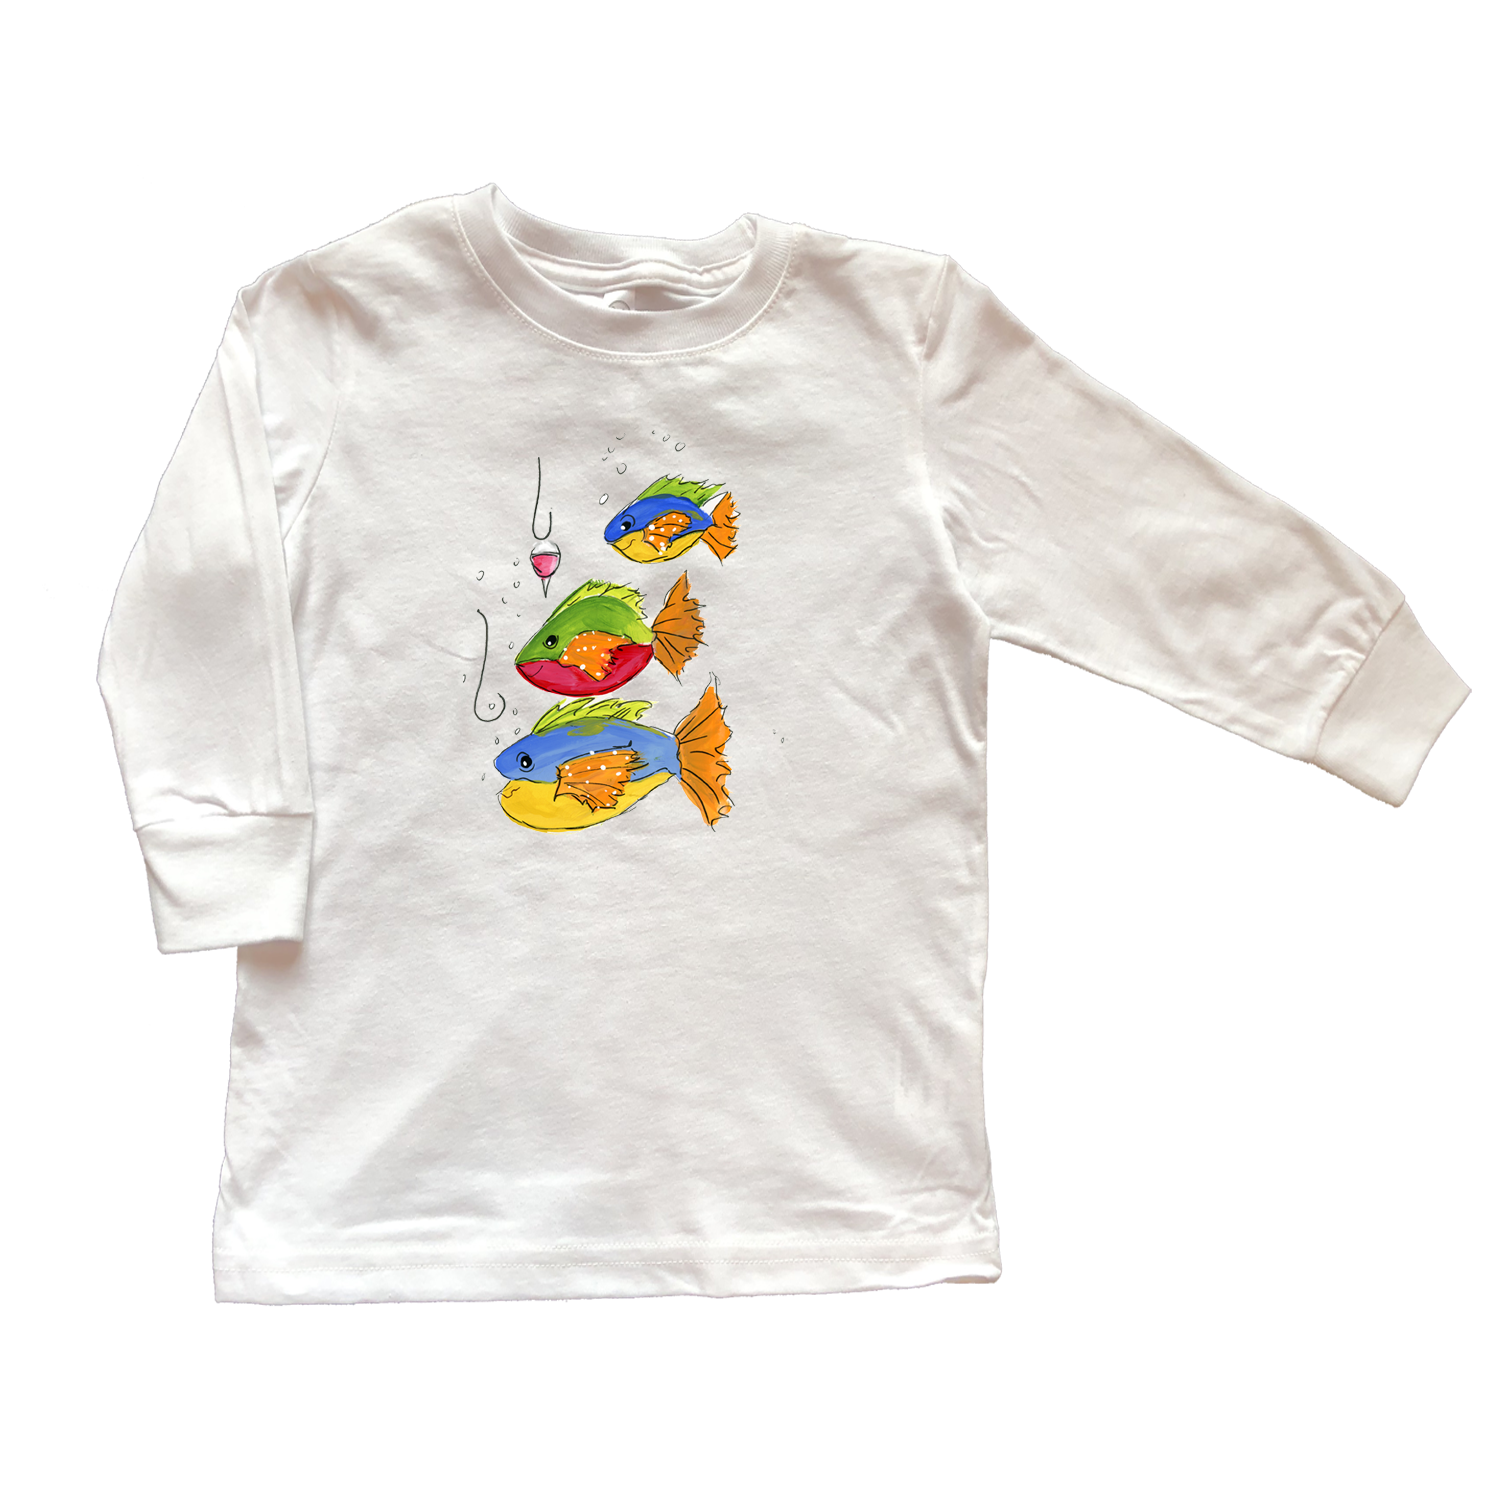 Boys Tee Shirt Long Sleeve TS1024